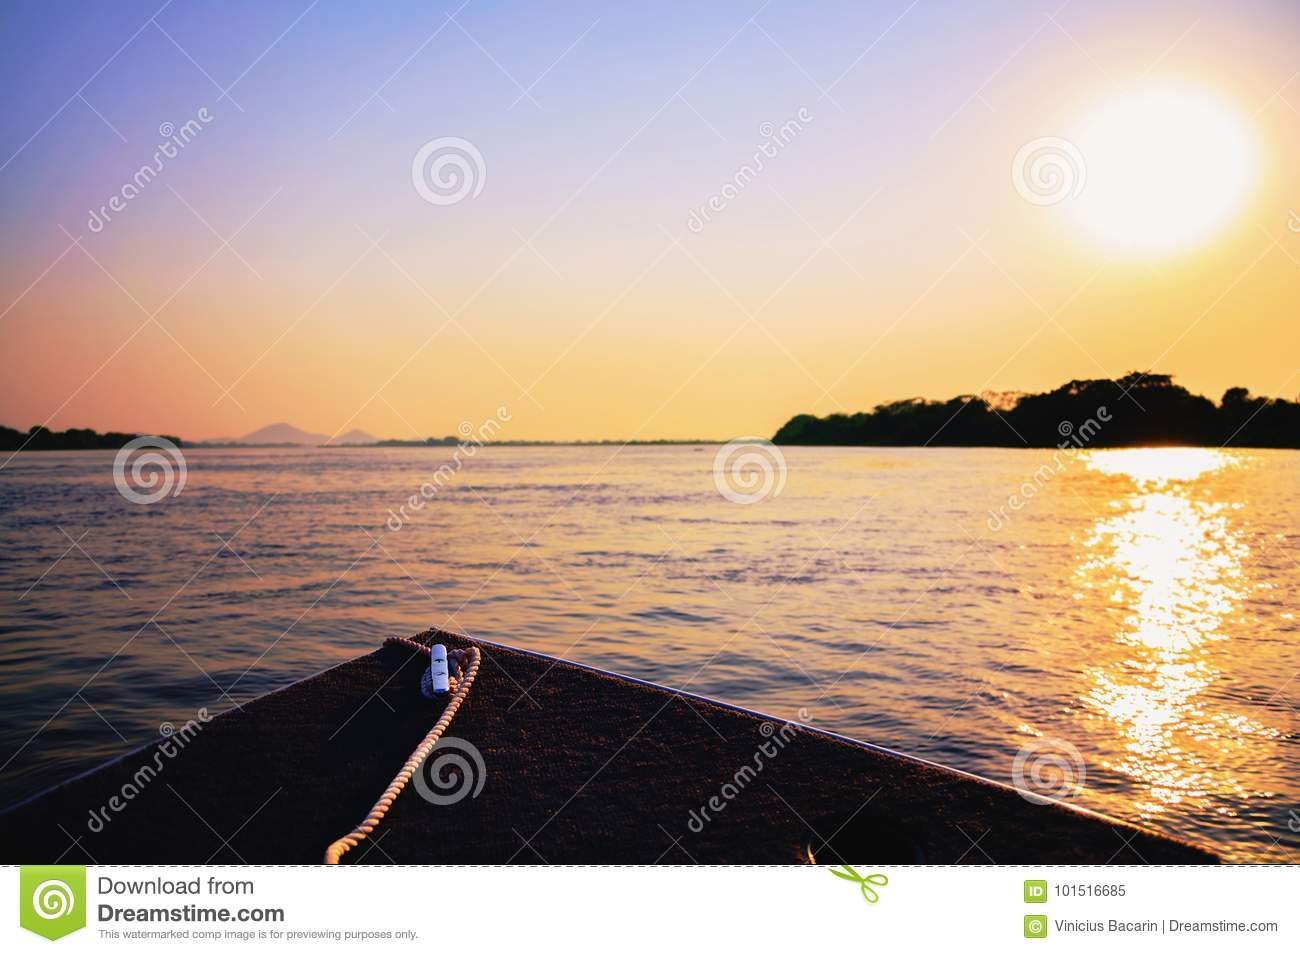 Amazing colorful landscape at sunset of a boat navigating on Pan